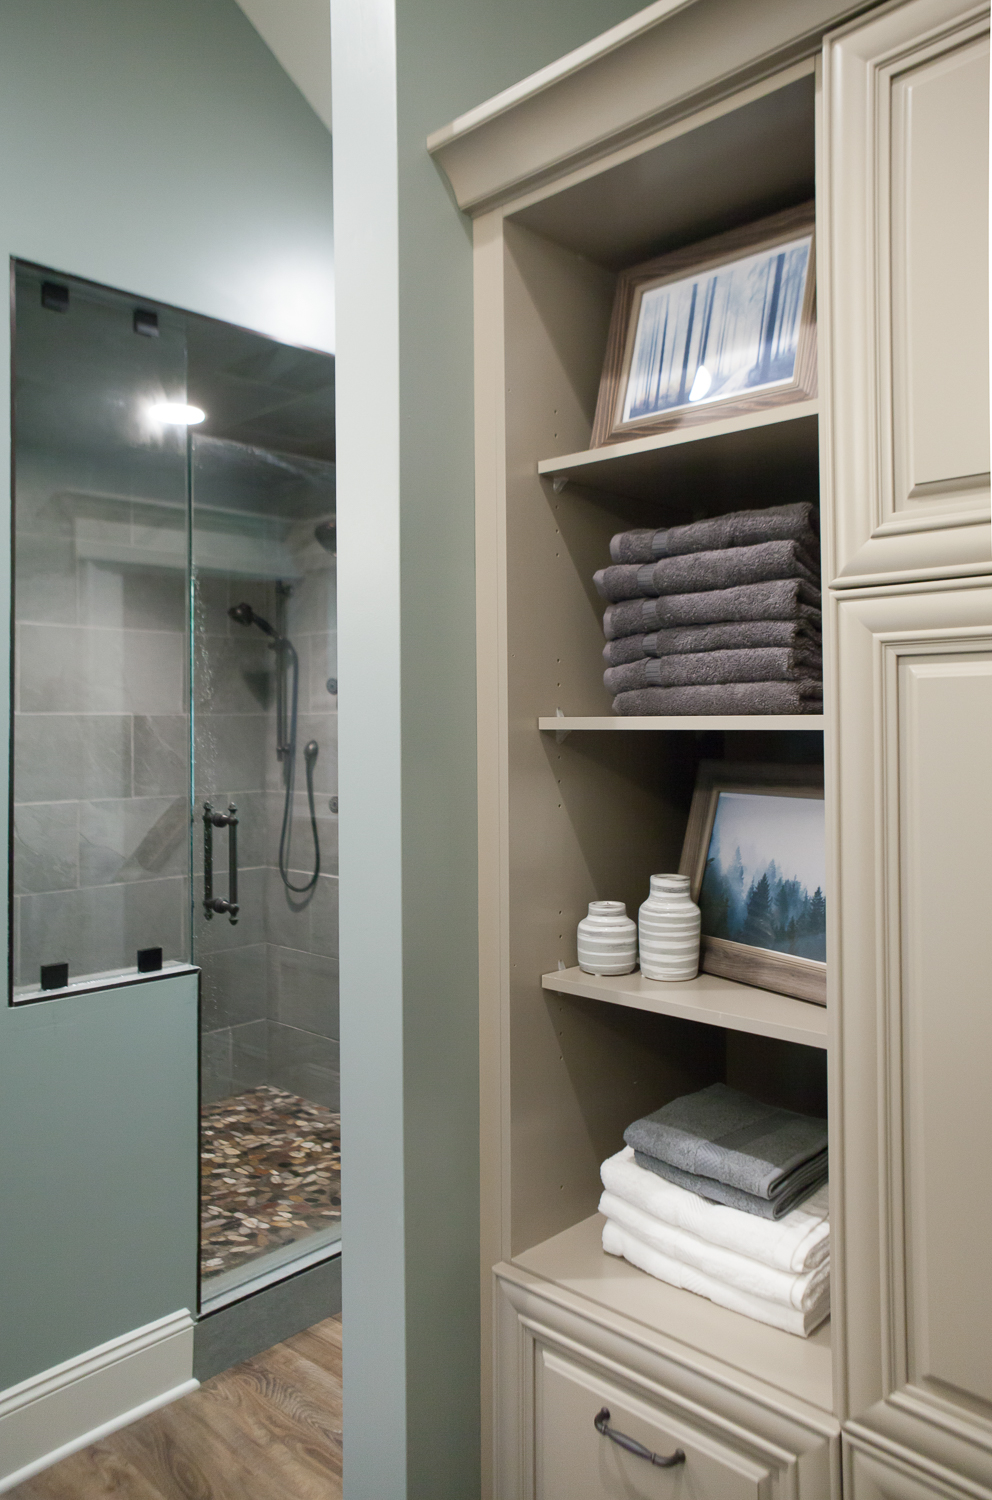 This bathroom has so much storage now!